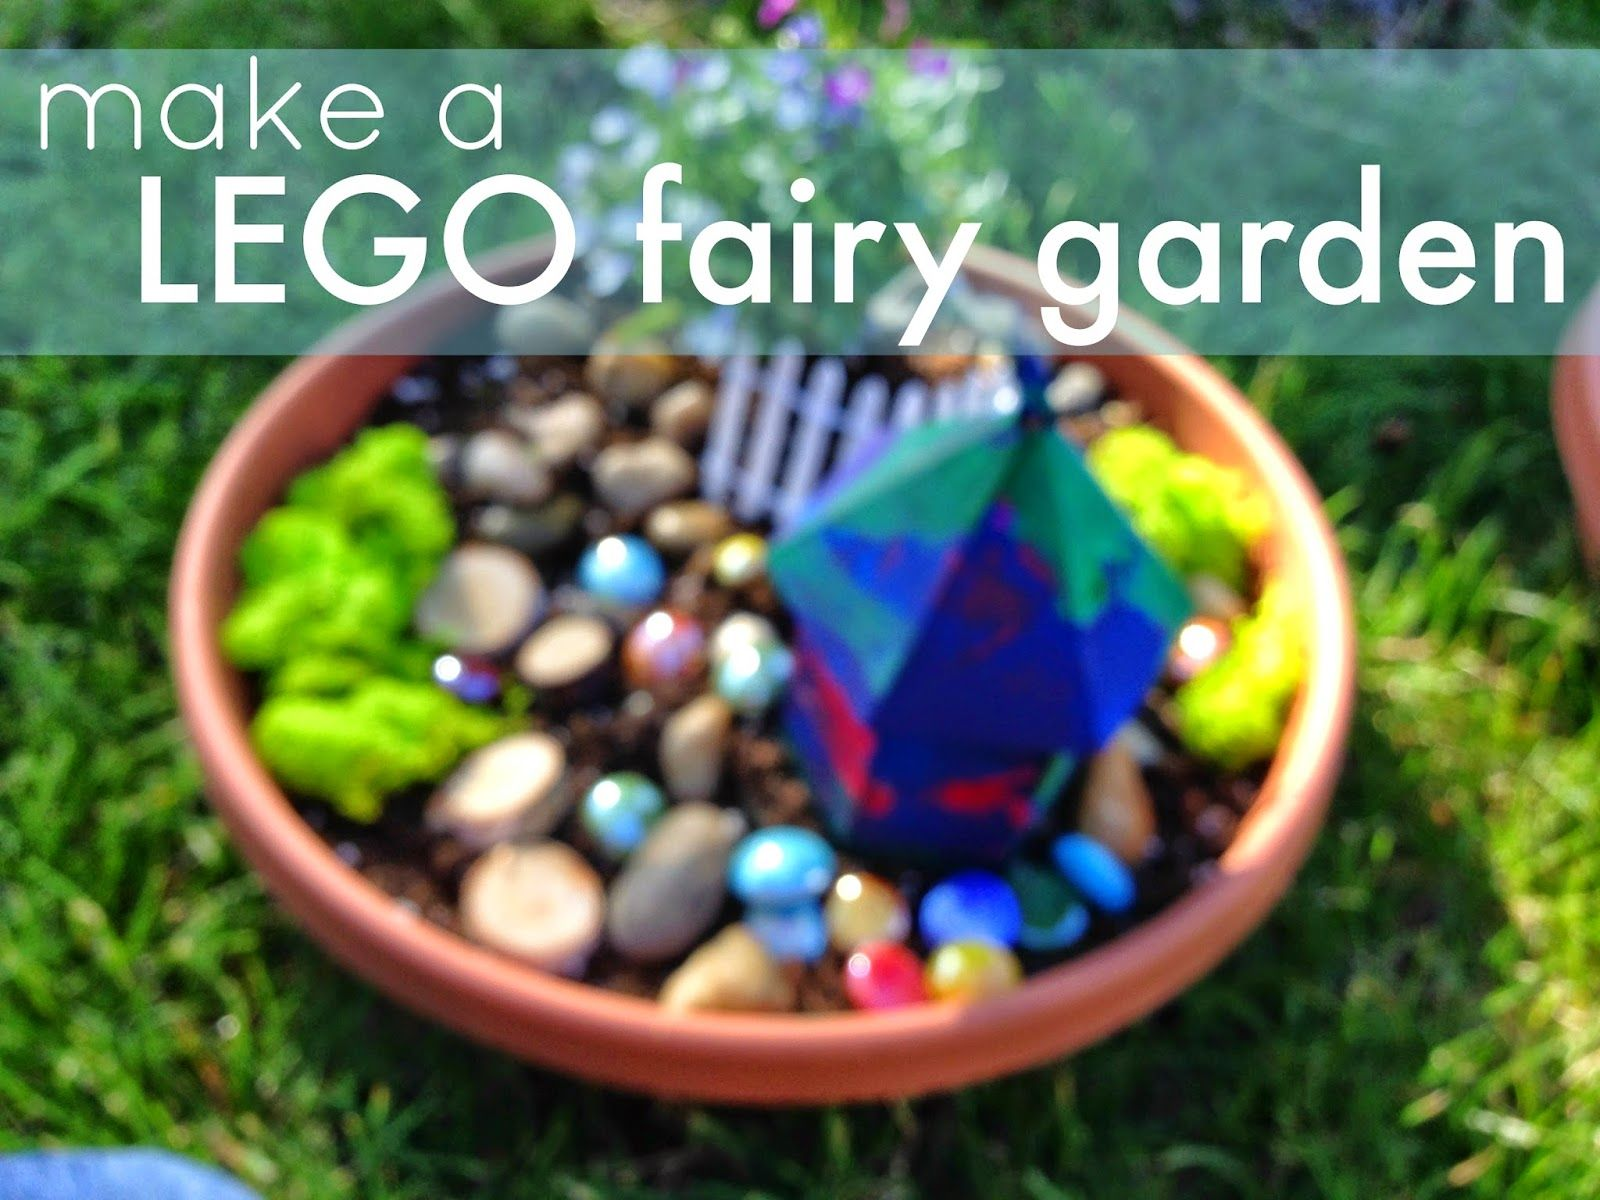 Garden Ideas For Kids To Make easy lego fairy garden for kids | gardens and garden club